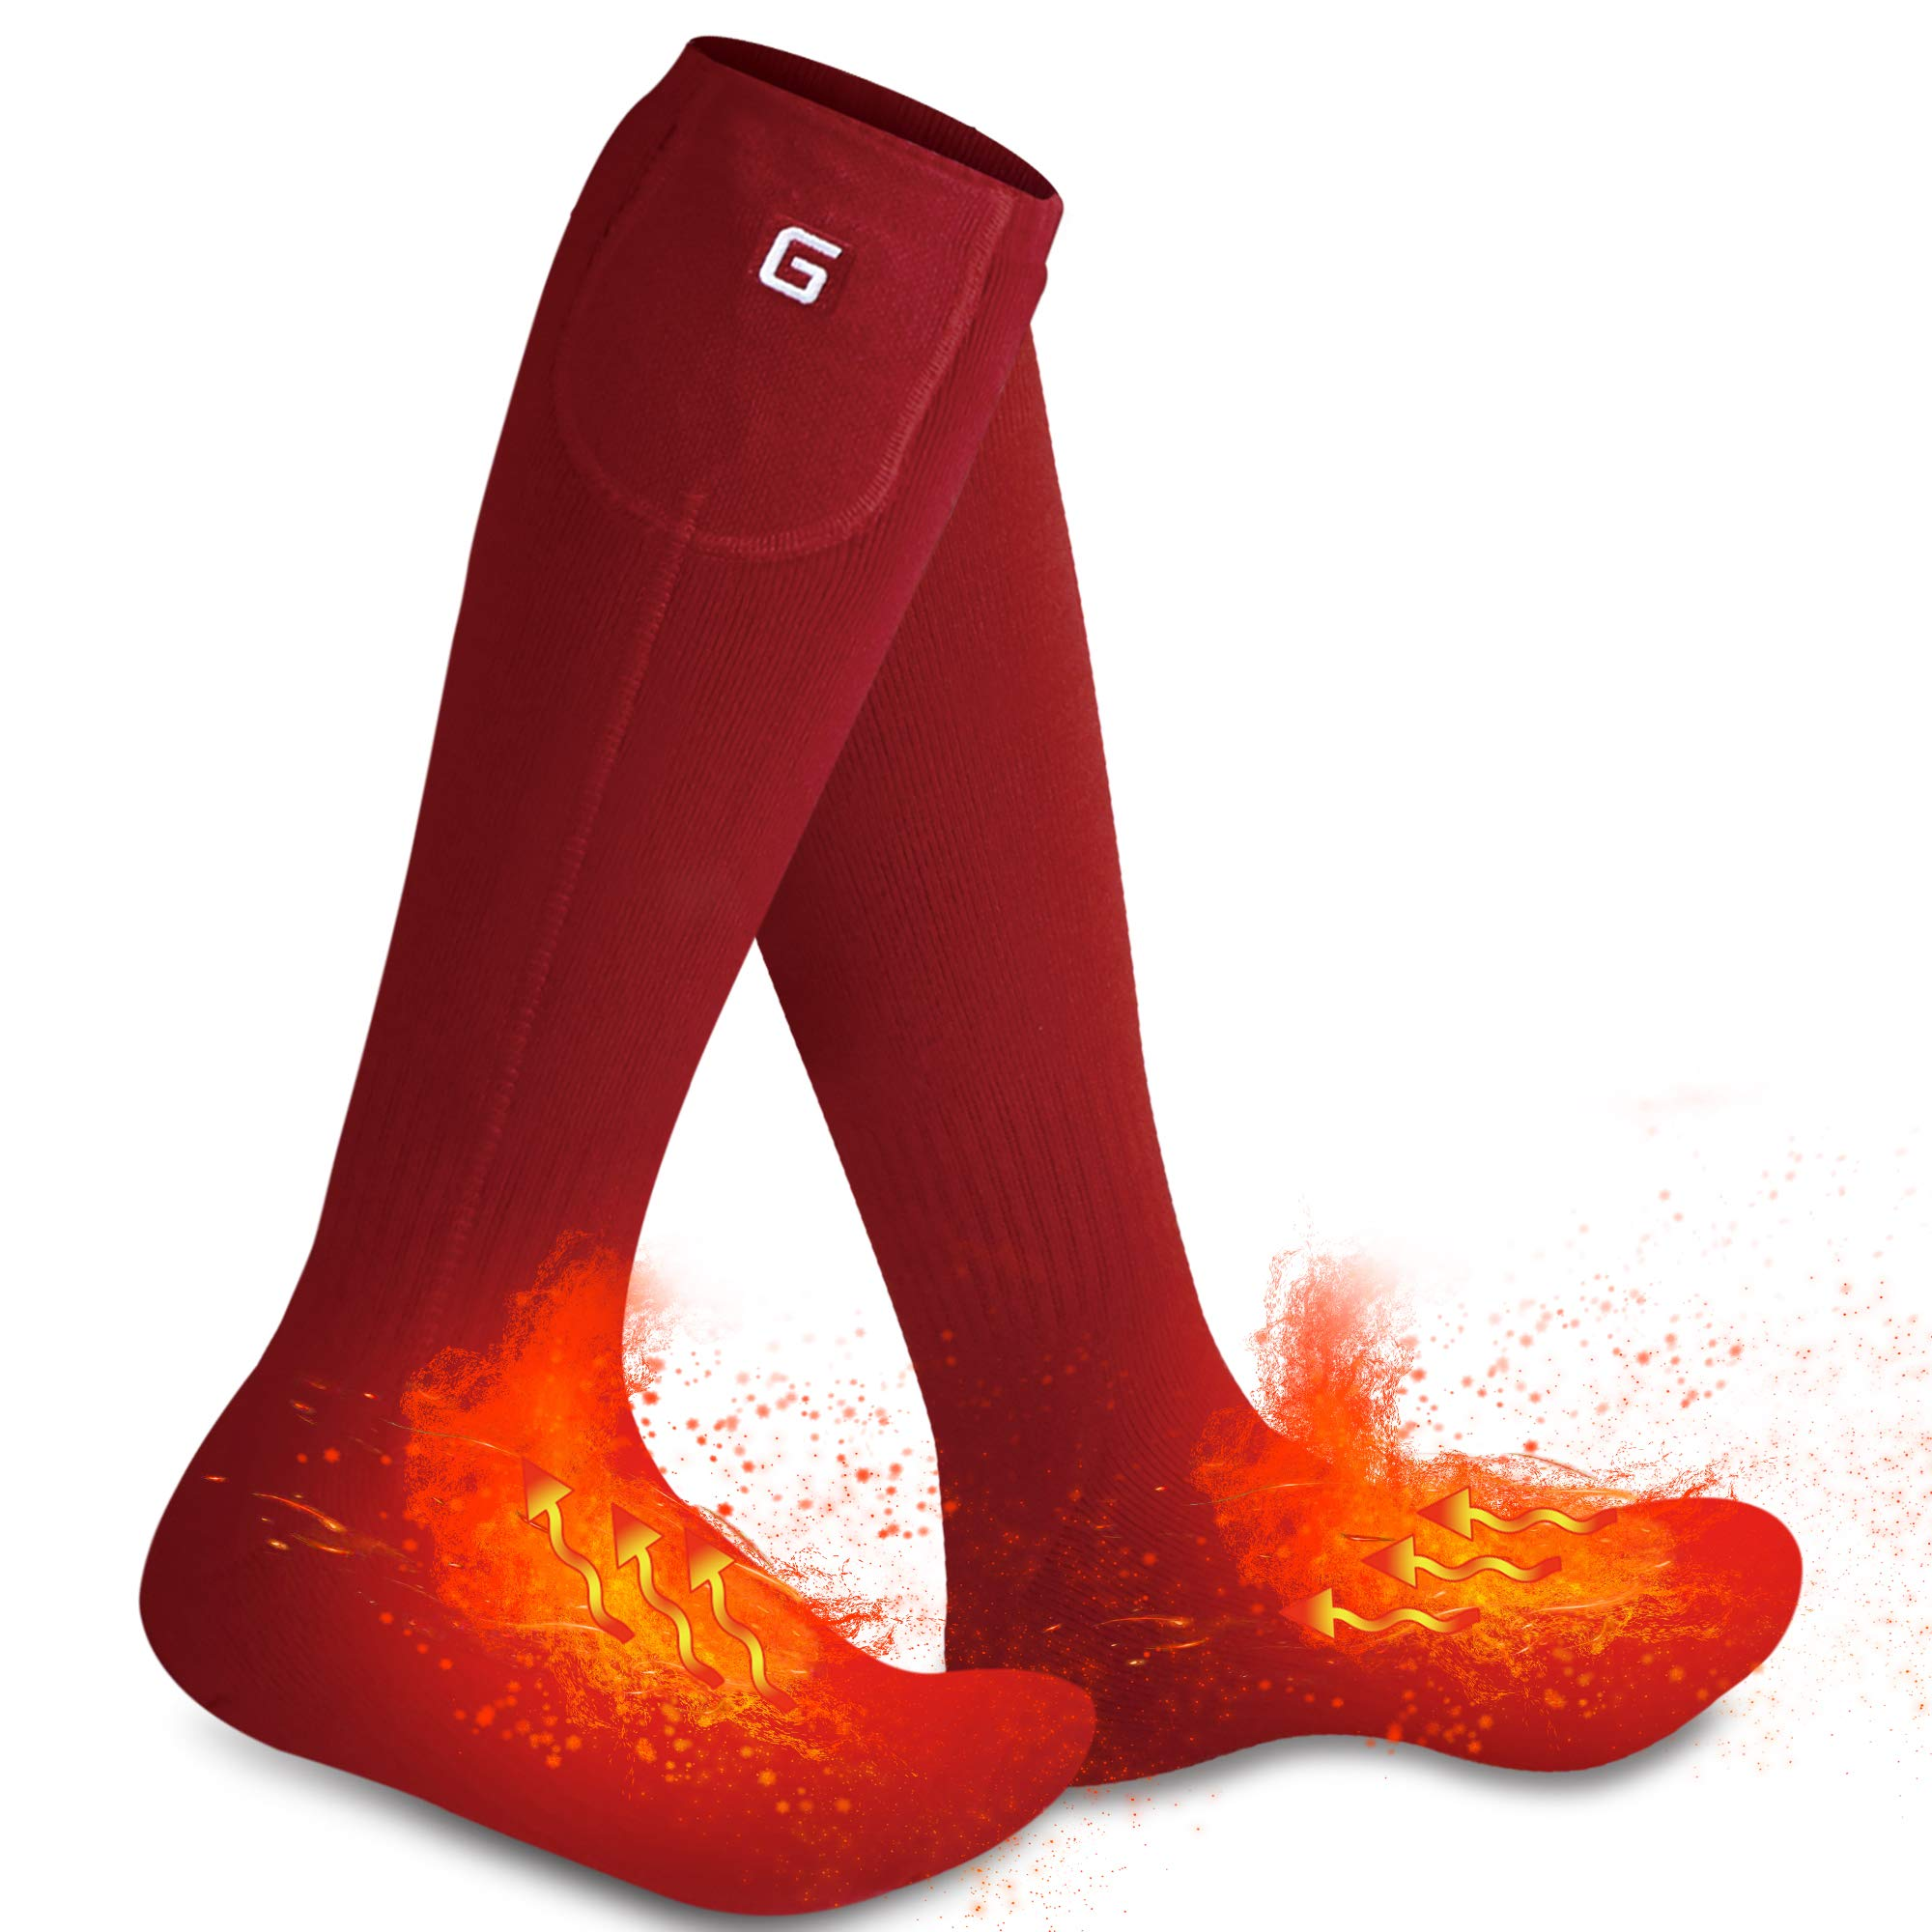 Autocastle Rechargeable Electric Heated Socks,Men Women Battery Powered Heated Socks Kit,Winter Warm Thermal Heated Socks for Chronically Cold Feet,Novelty Sports Outdoors Camping Hiking Socks (Red) by Autocastle